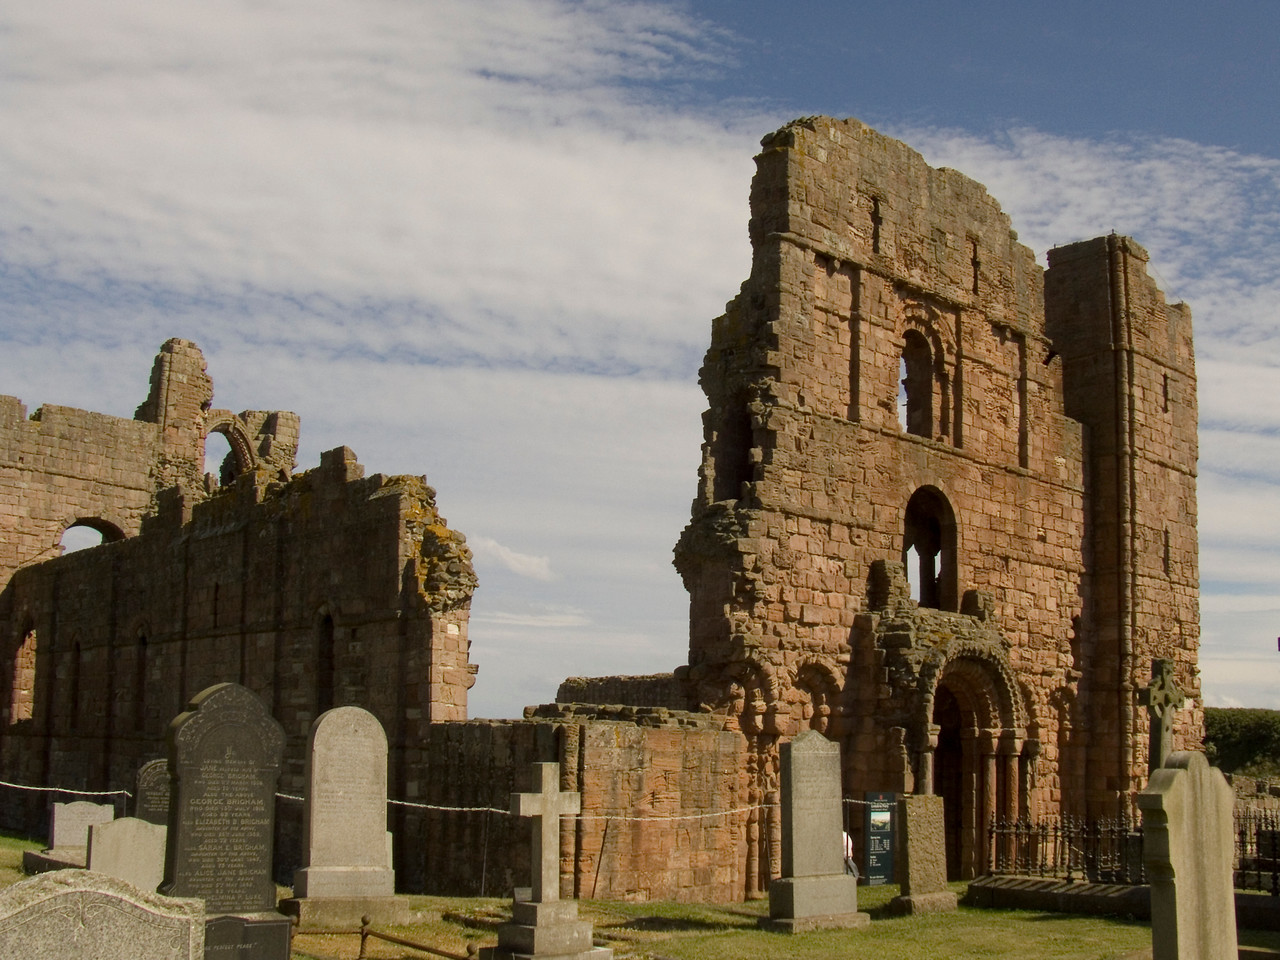 The ruined priory at Lindisfarne